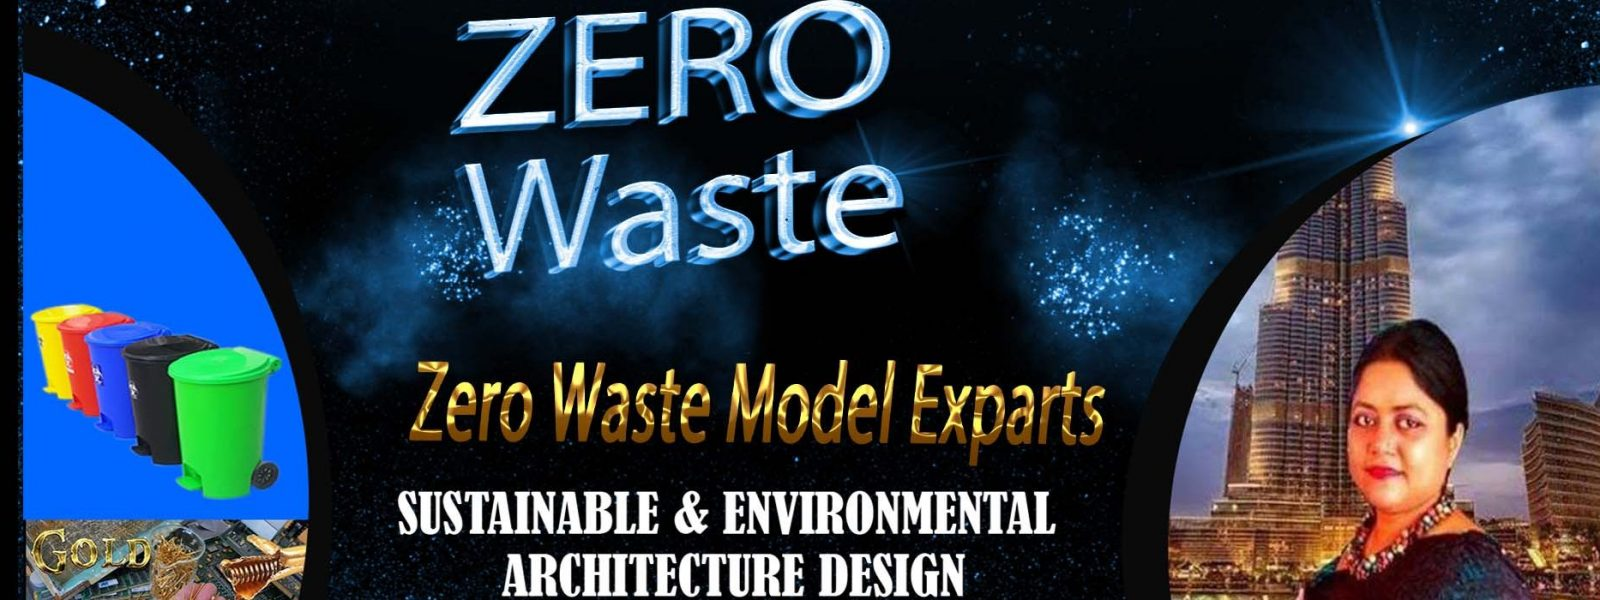 Architect Sumsun Sustainable architecture 2030. Clean City Green City . Zero waste Model